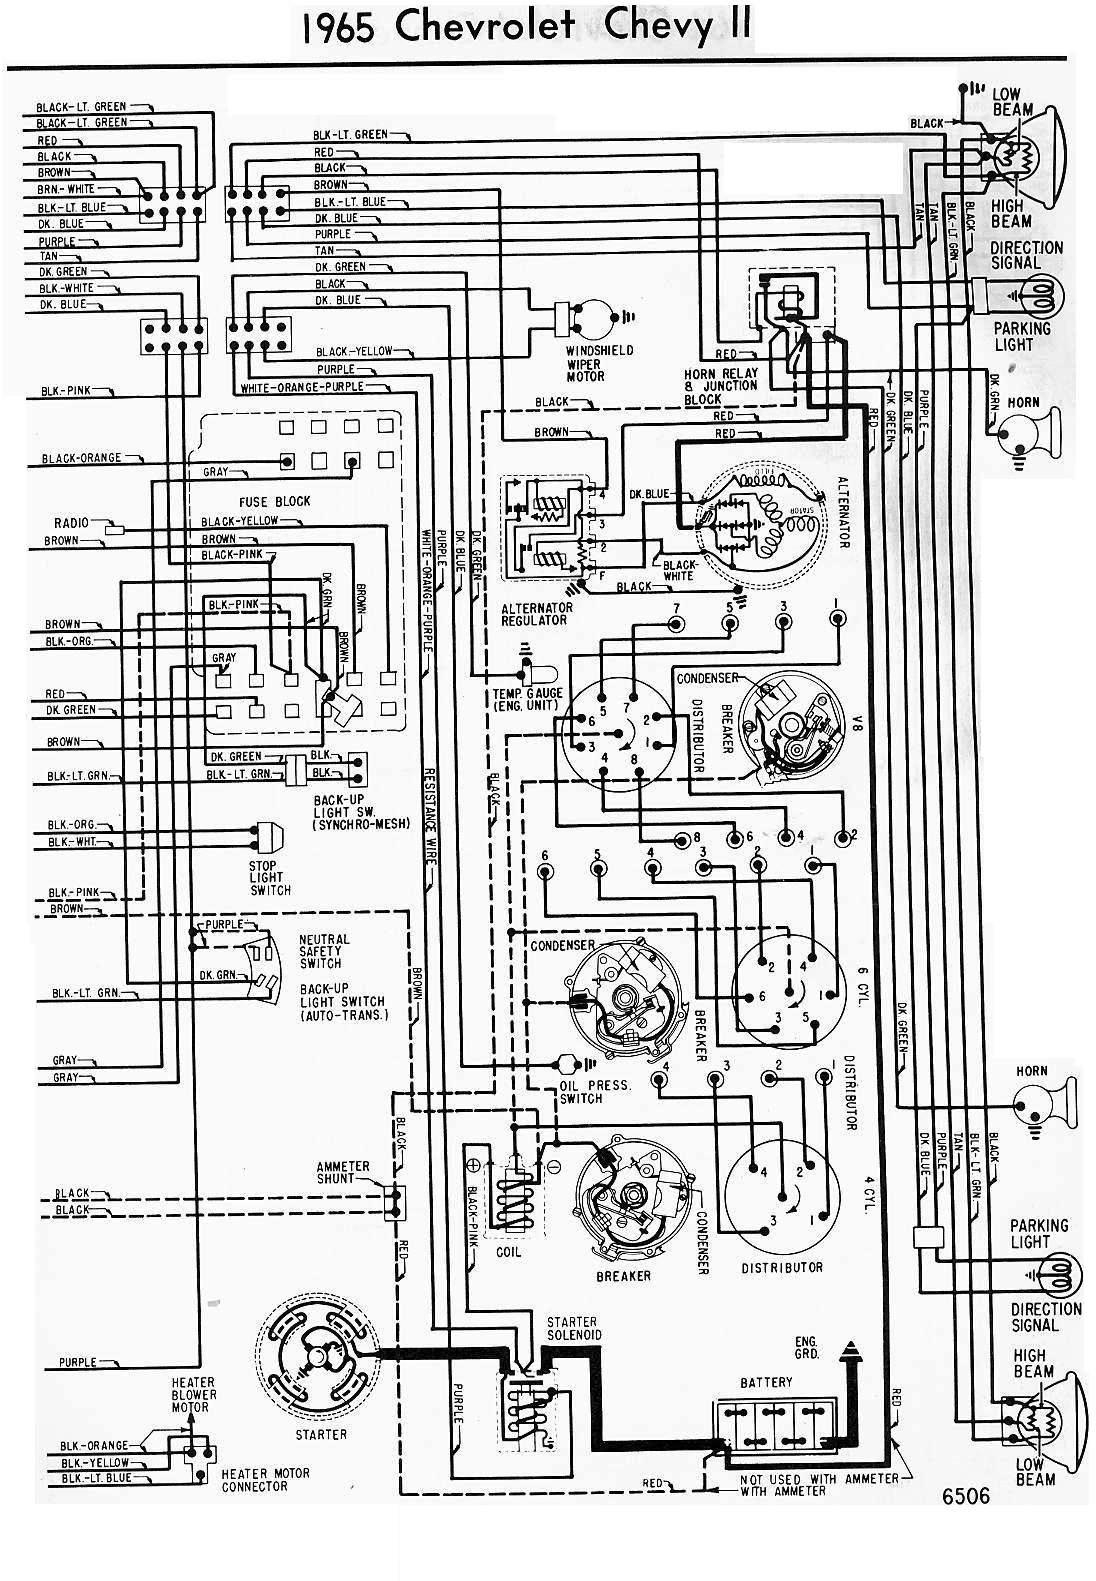 small resolution of 1966 impala wiring schematic wiring library1965 chevrolet chevy ii wiring diagram